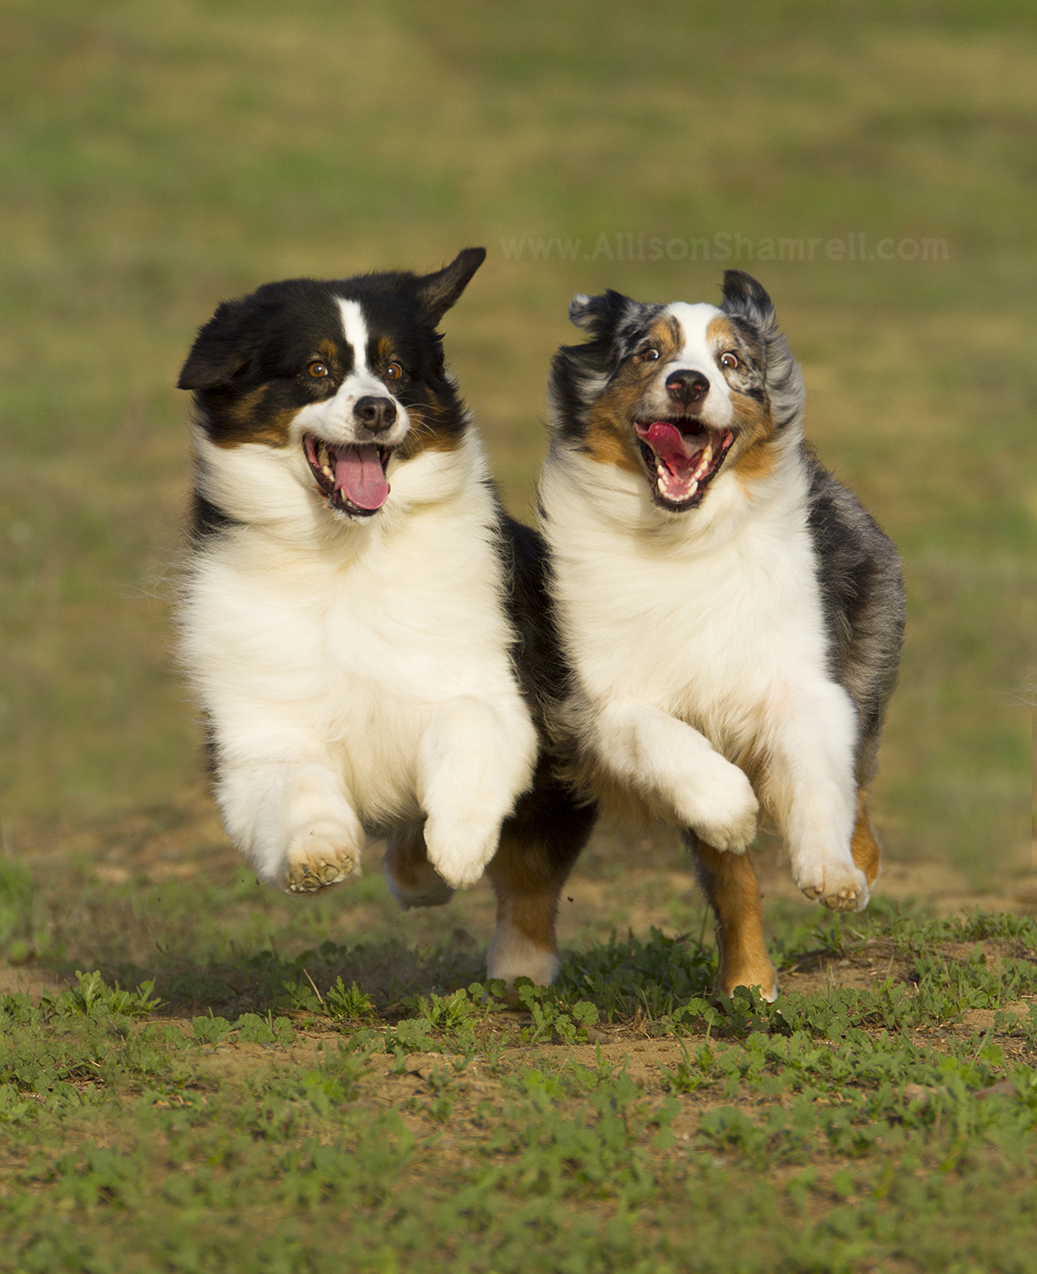 How to Take Photos of Dogs Who Won't Sit Still